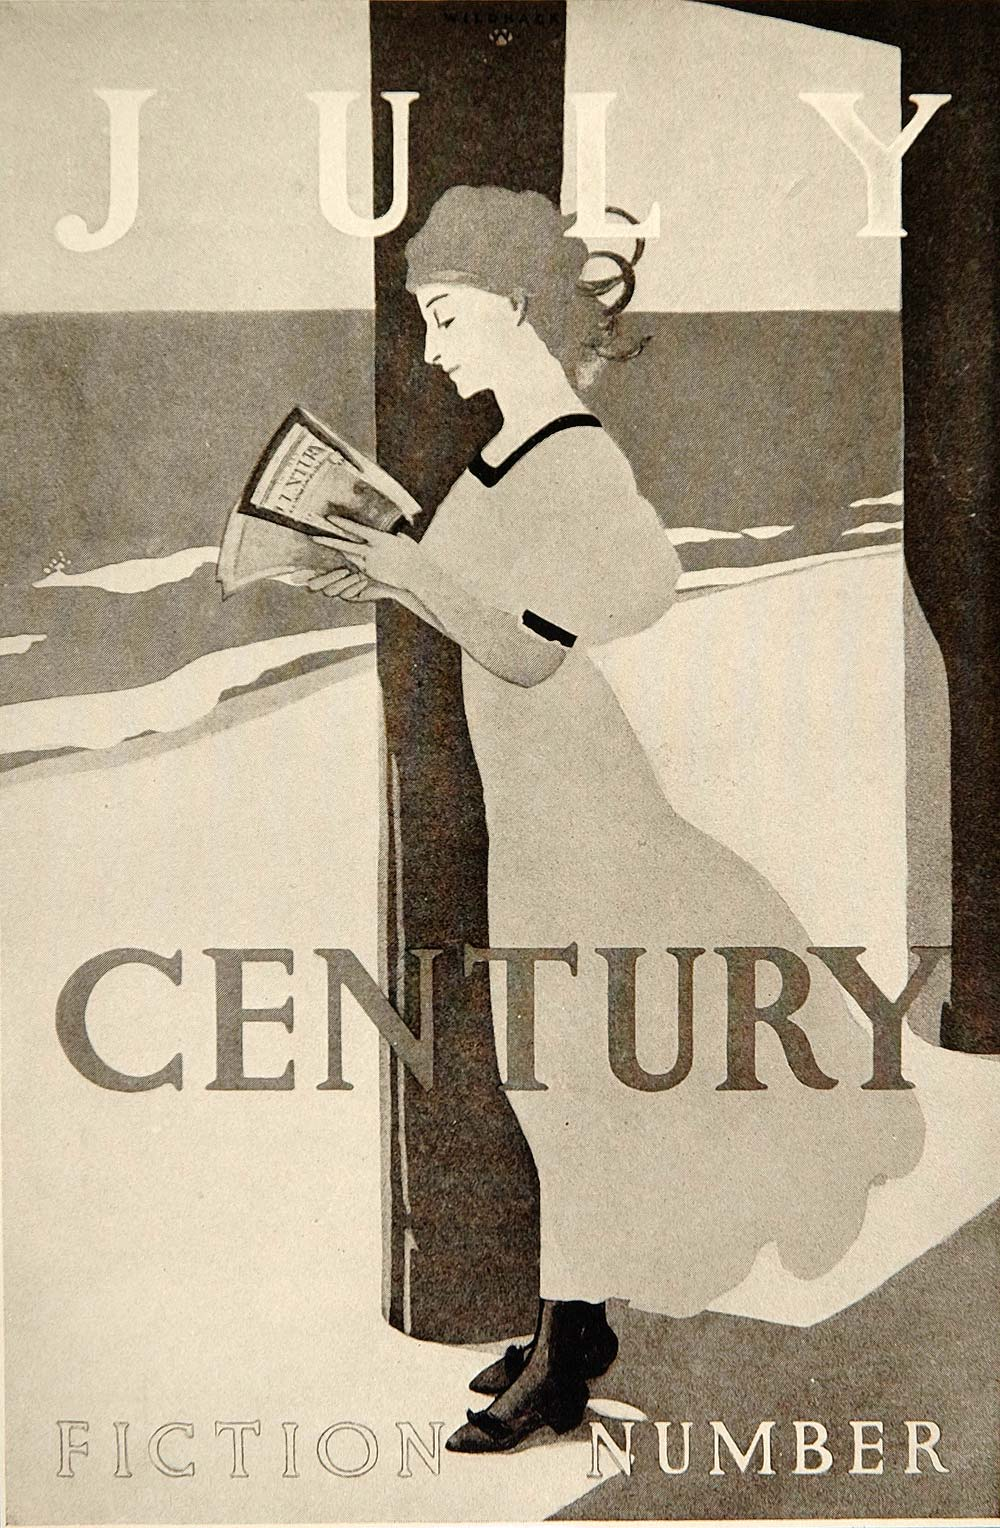 1913 Century Magazine Robert J. Wildhack Mini Poster - ORIGINAL CB1